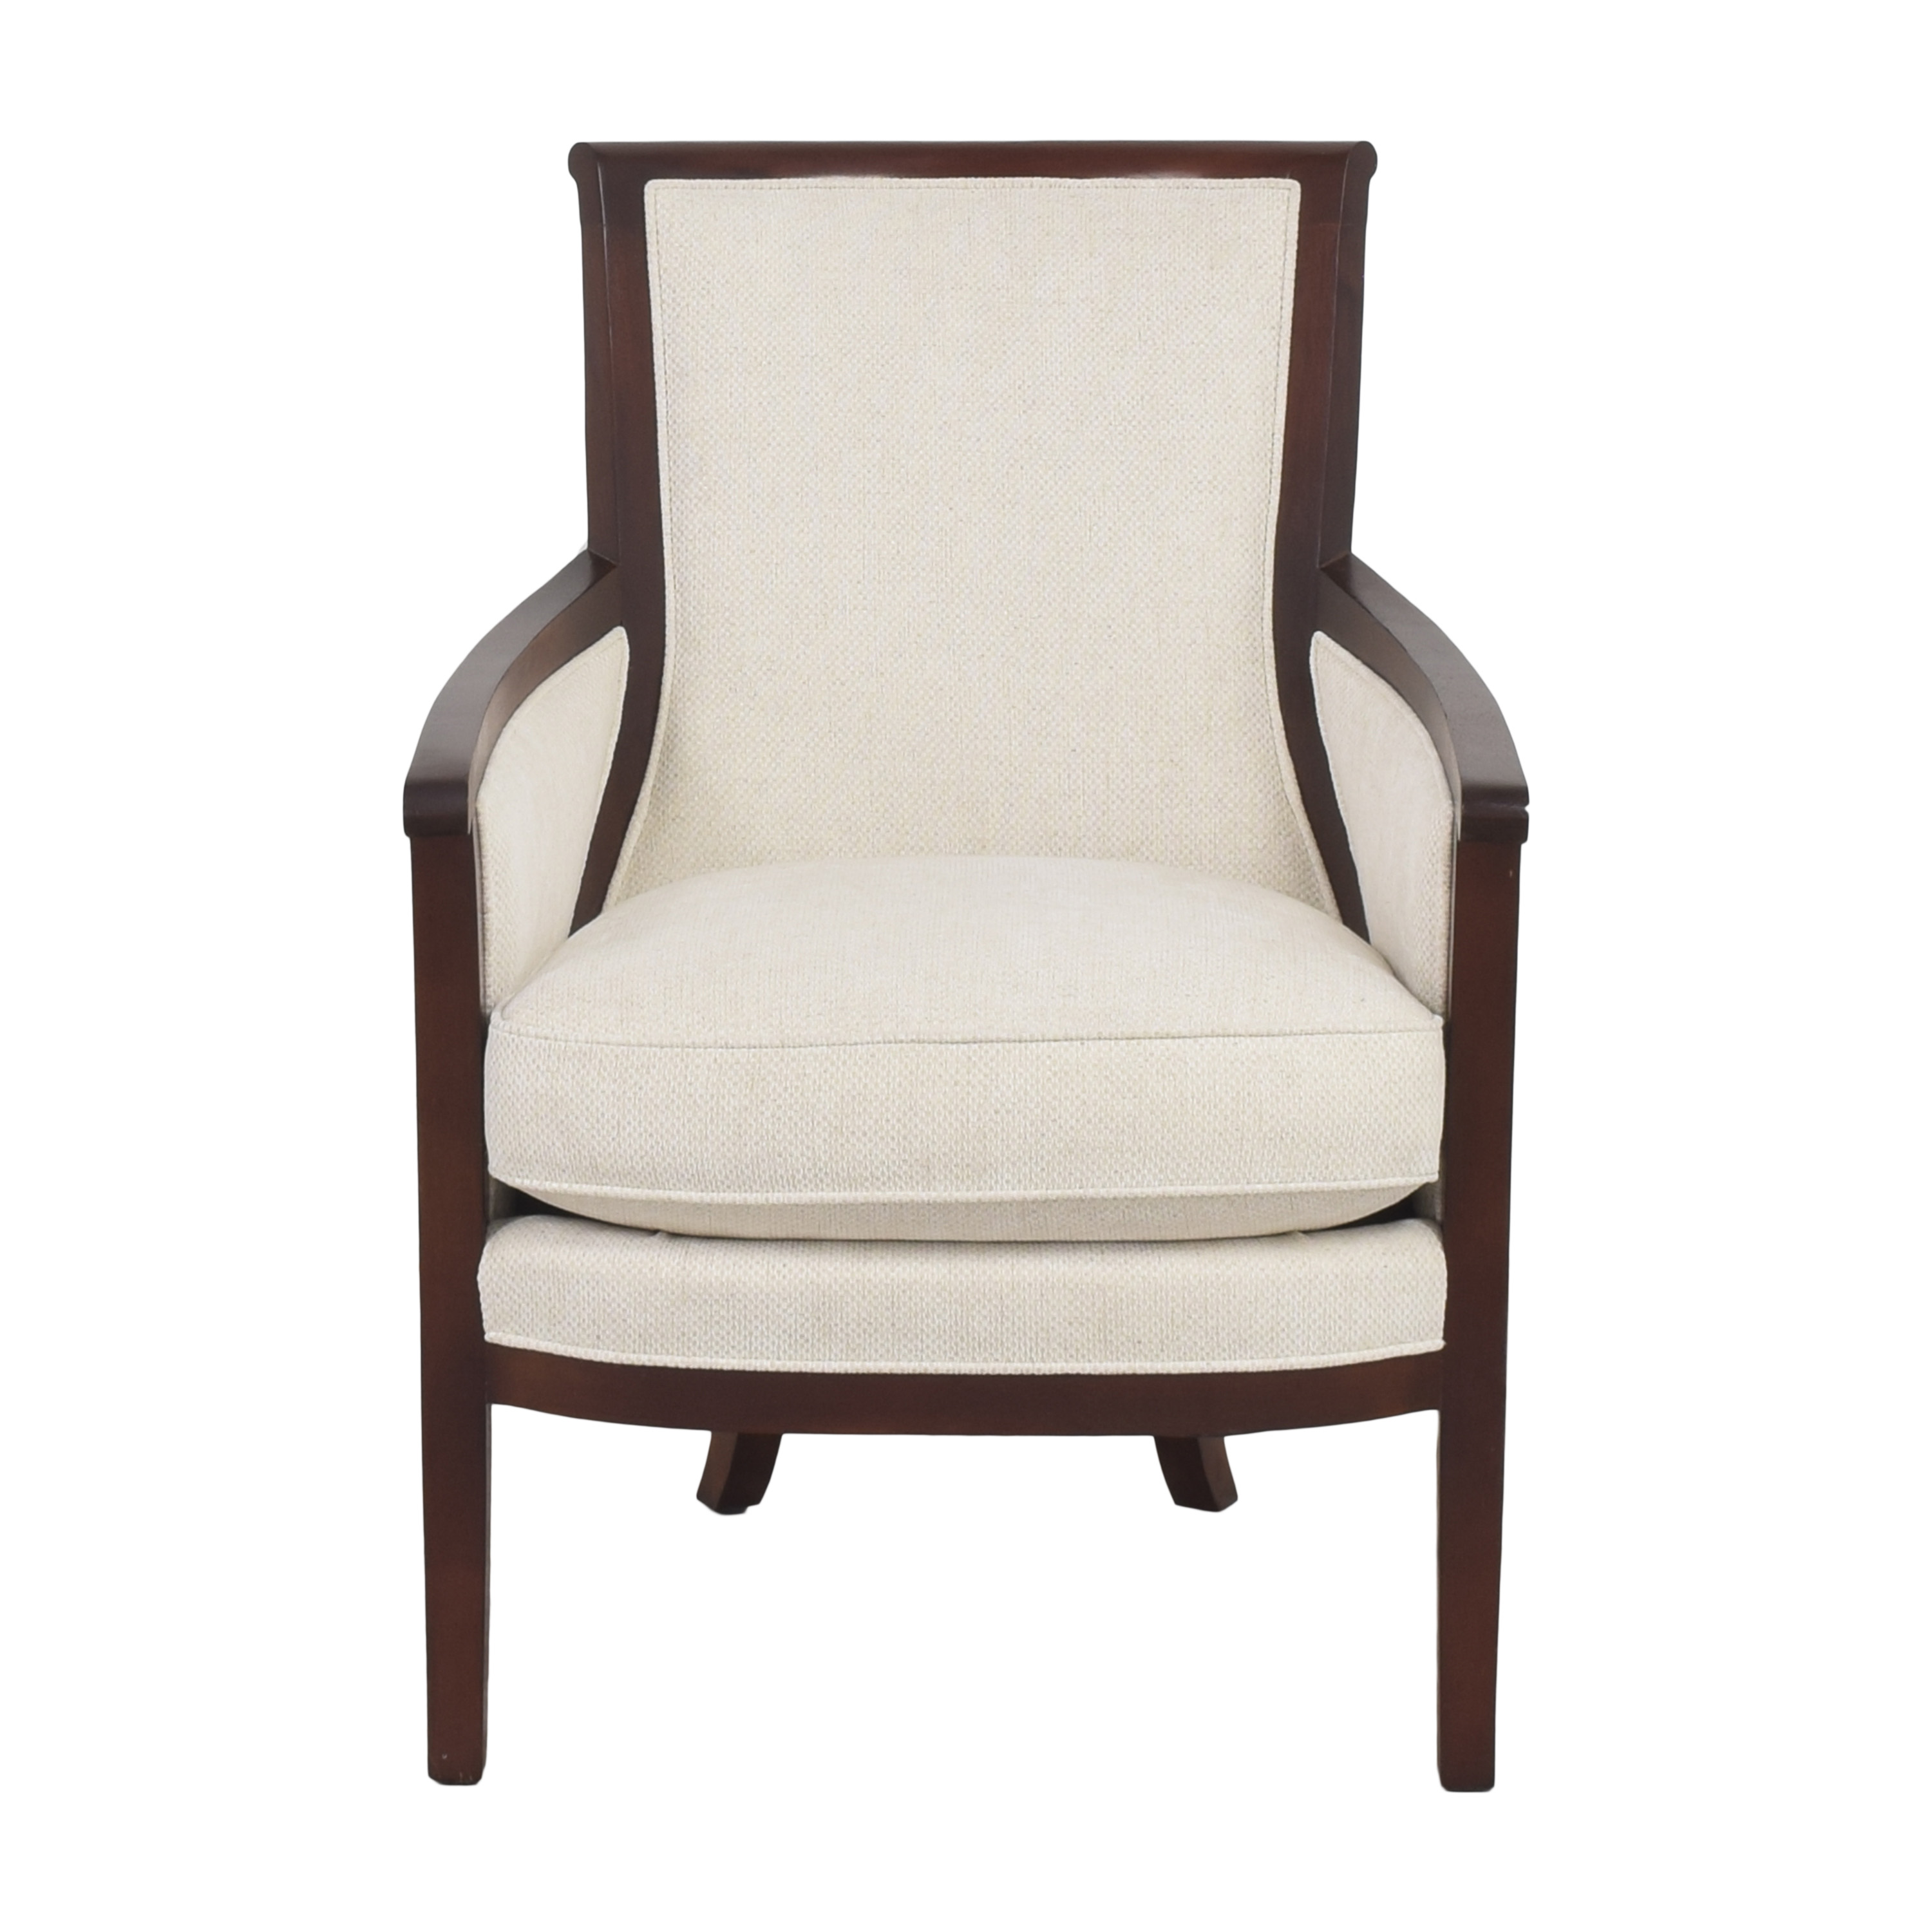 Hickory Chair Hickory Chair Breck Accent Chair pa